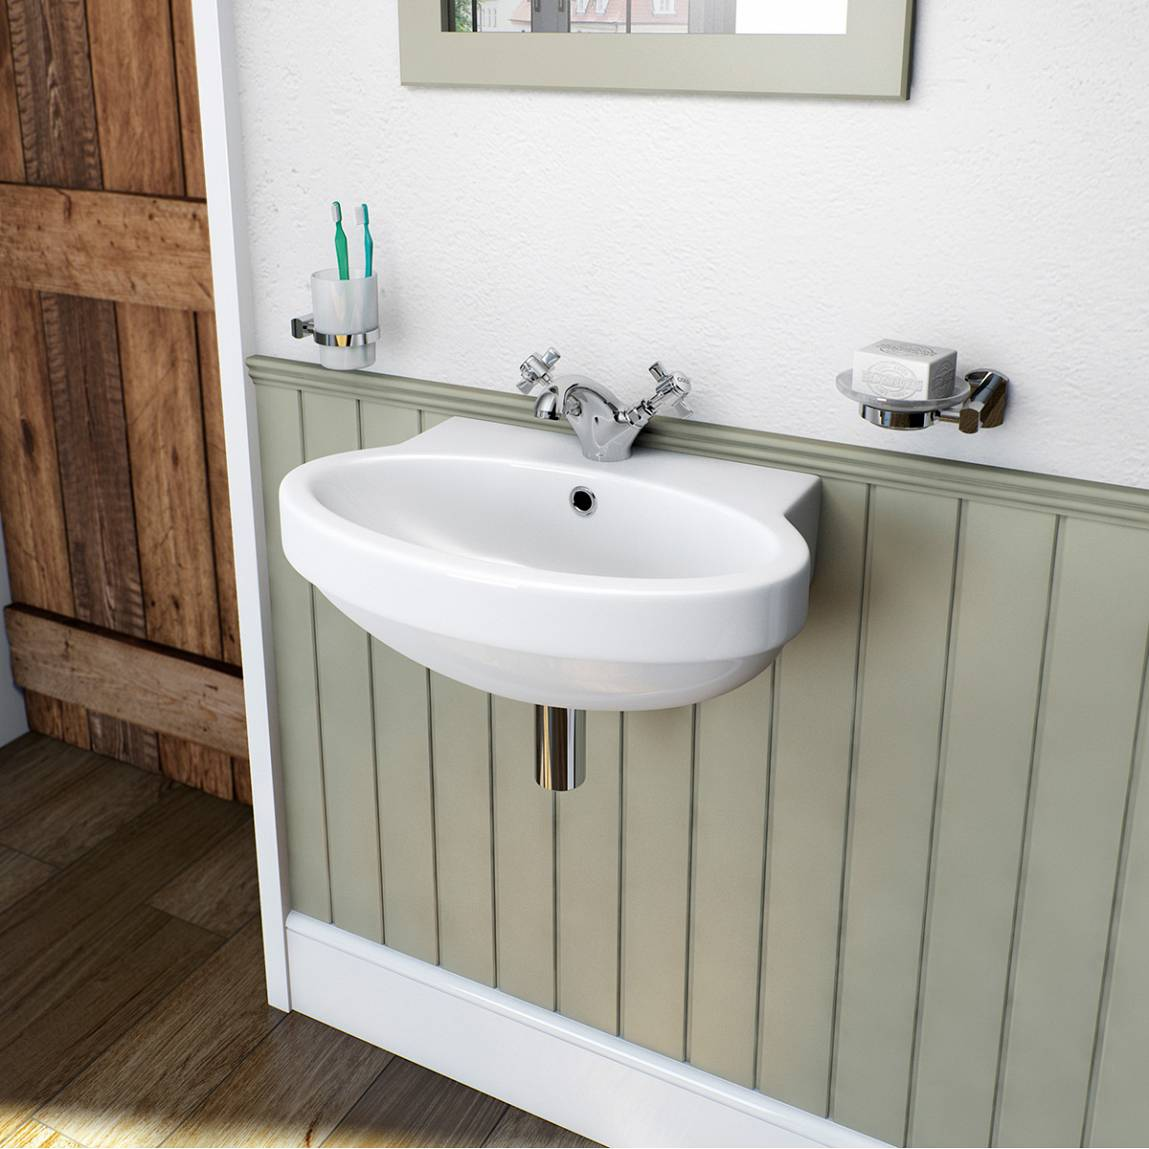 Deco wall mounted basin